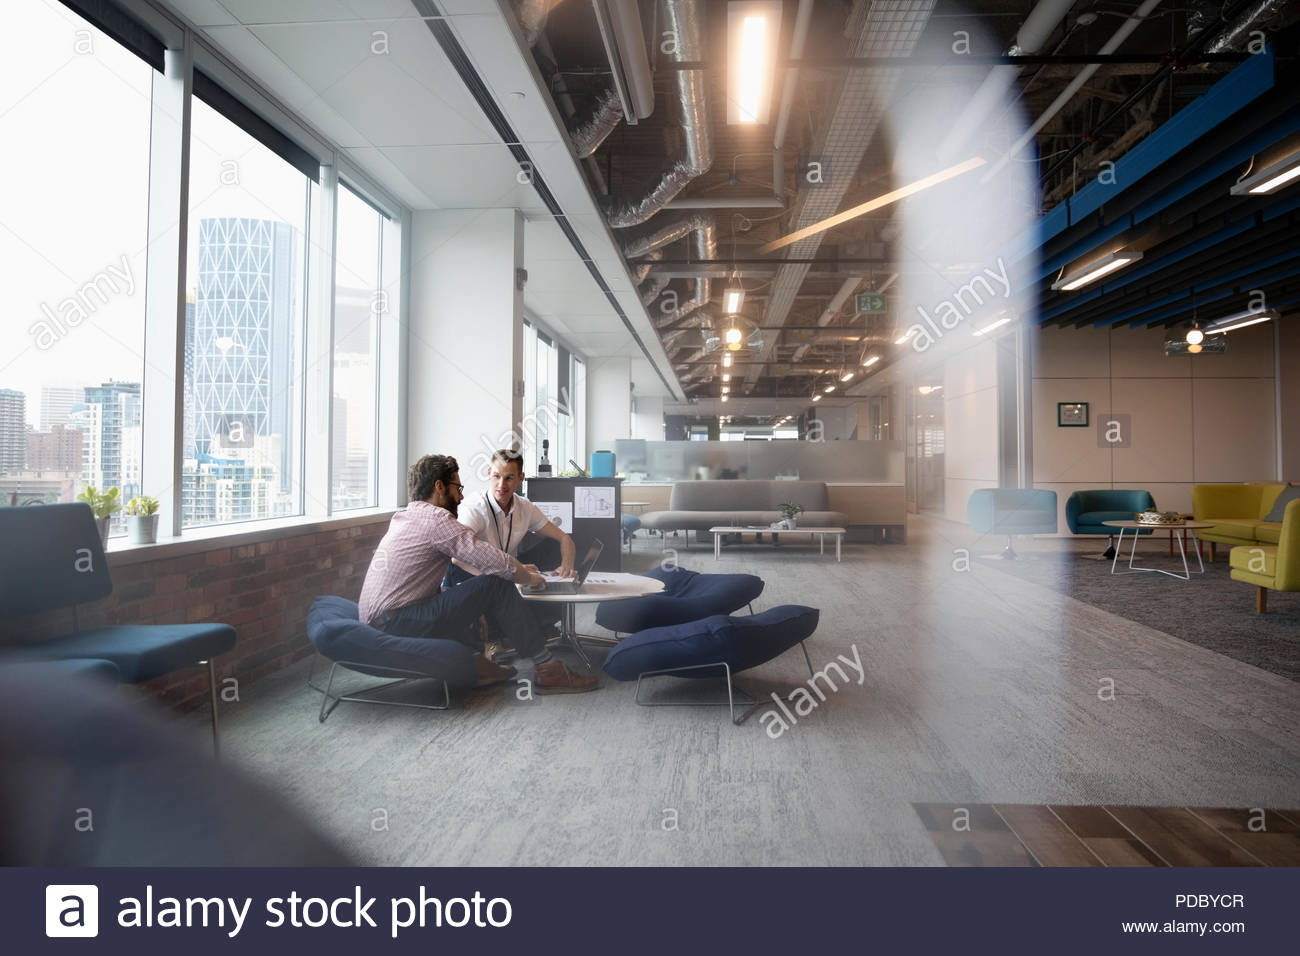 Creative Businessmen Meeting In Office Lounge   Stock Image